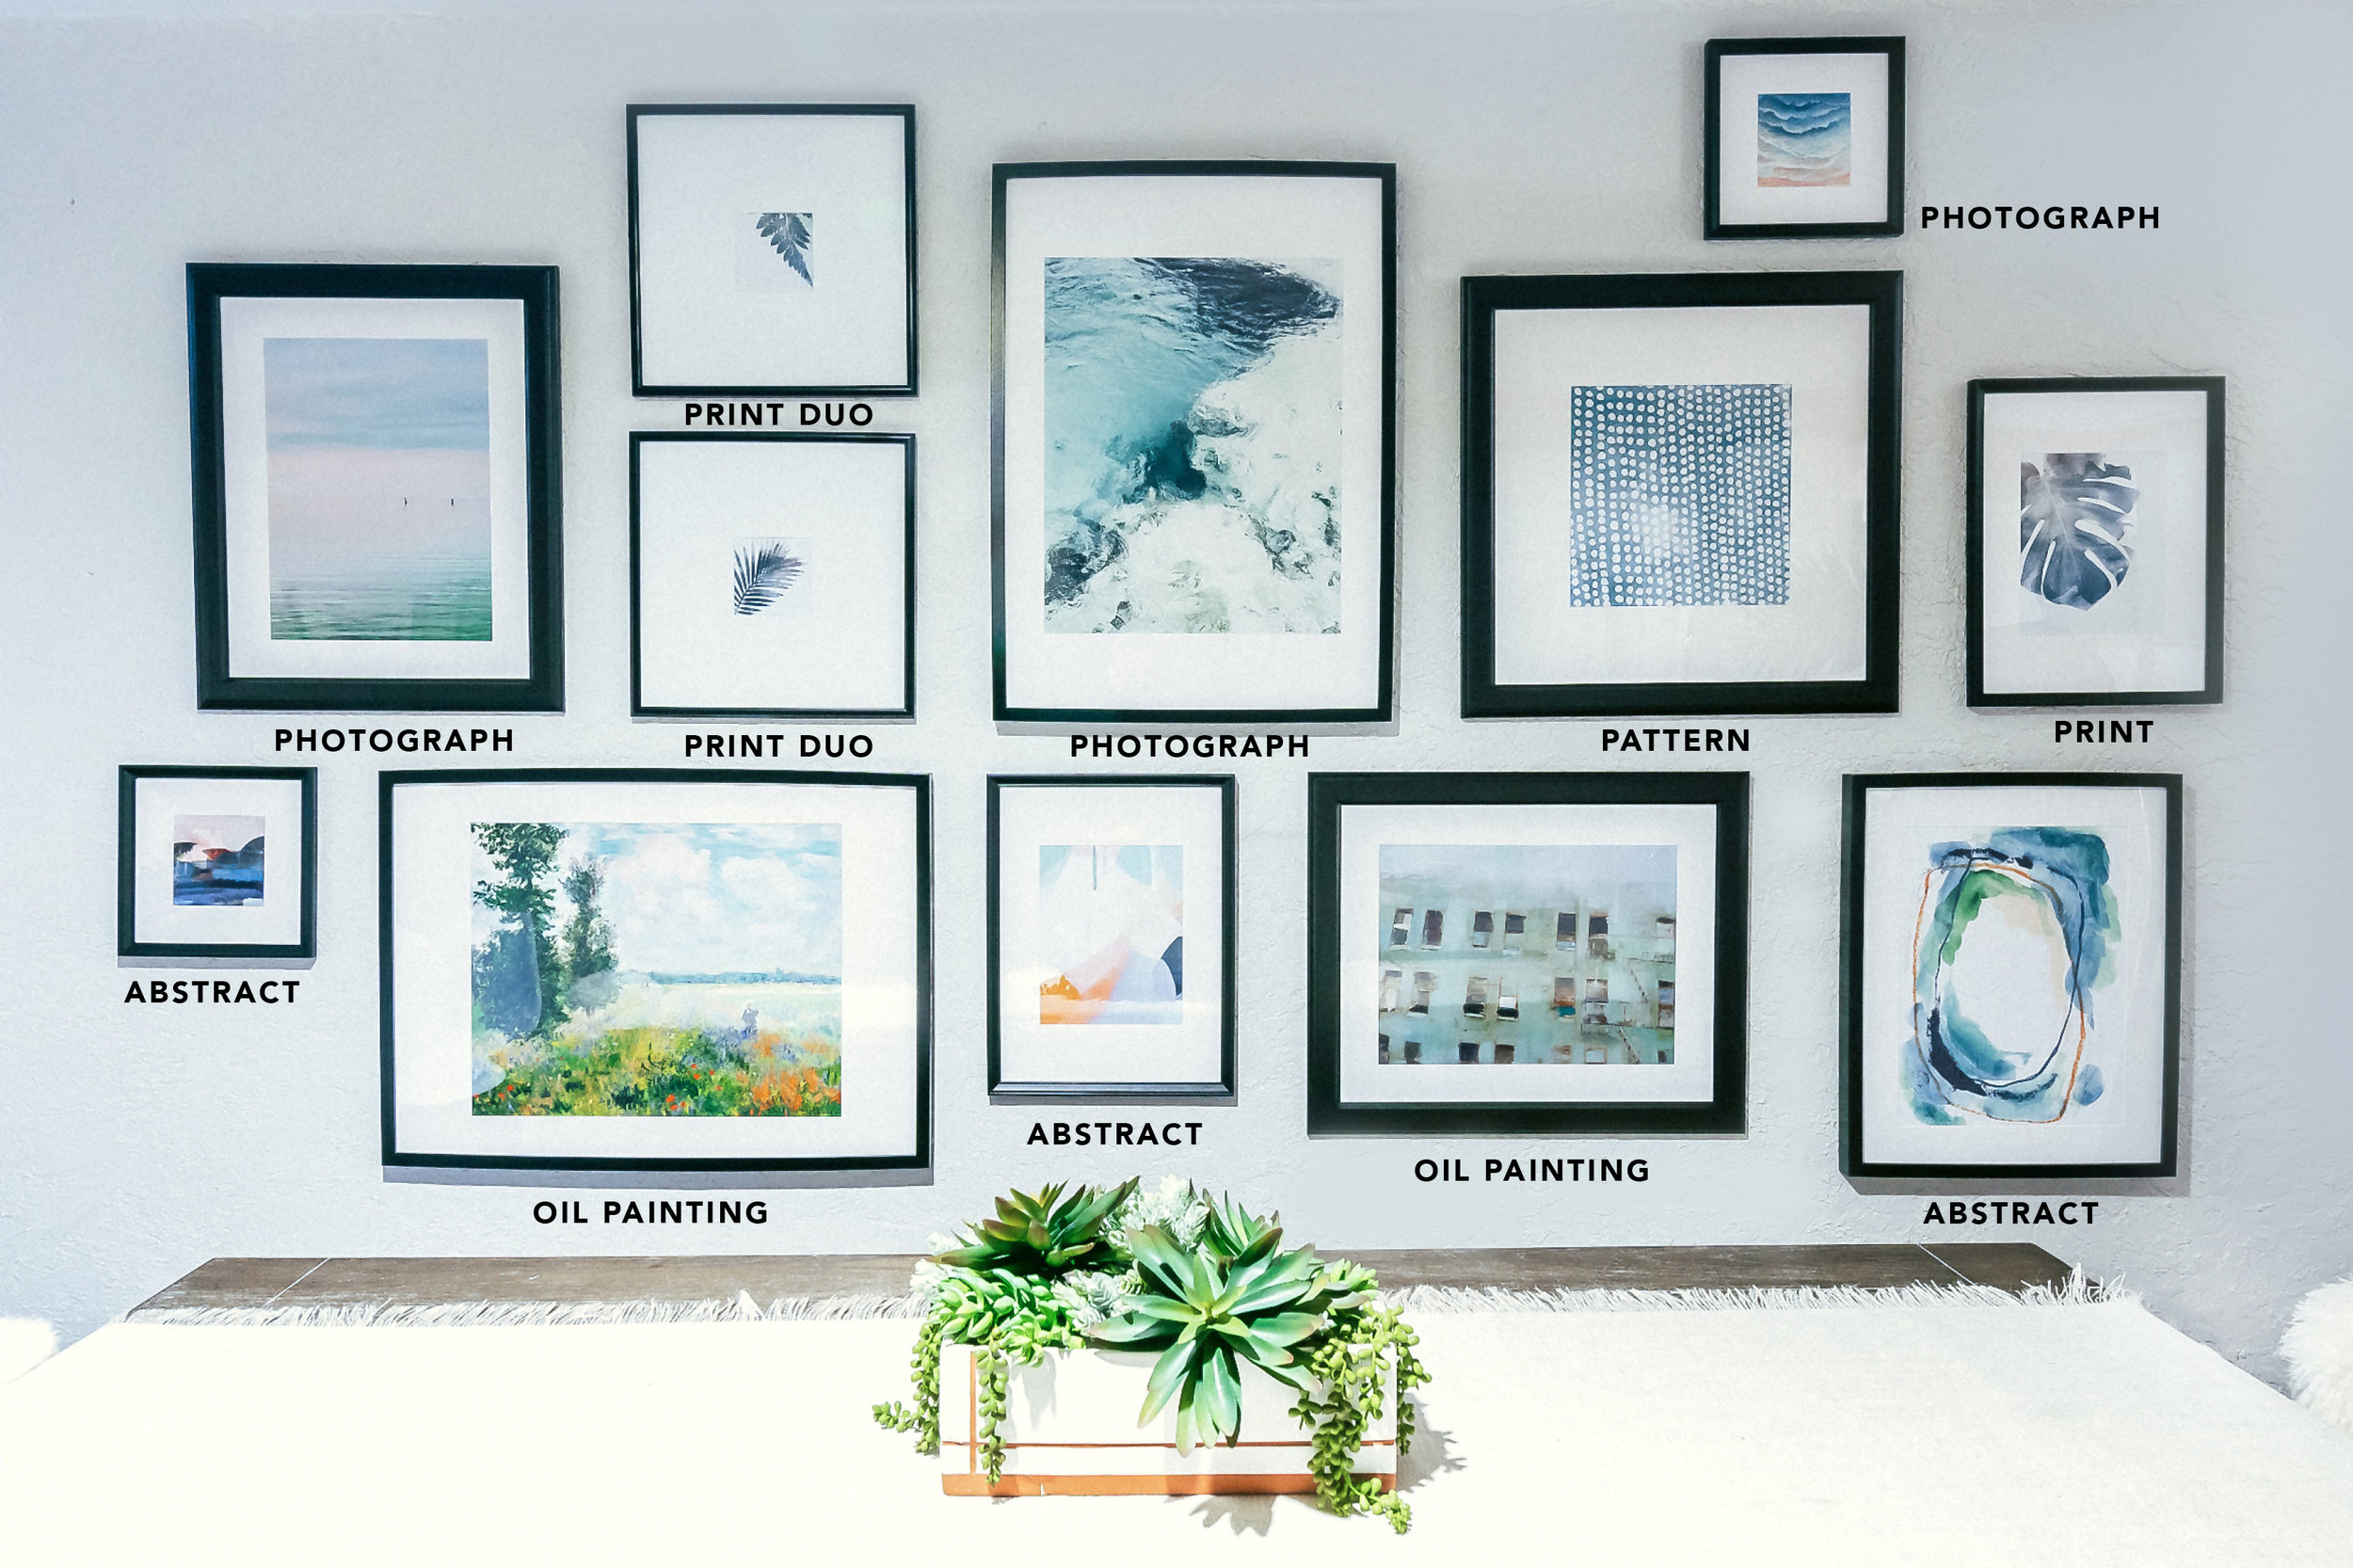 Anatomy of a Gallery Wall5.jpg